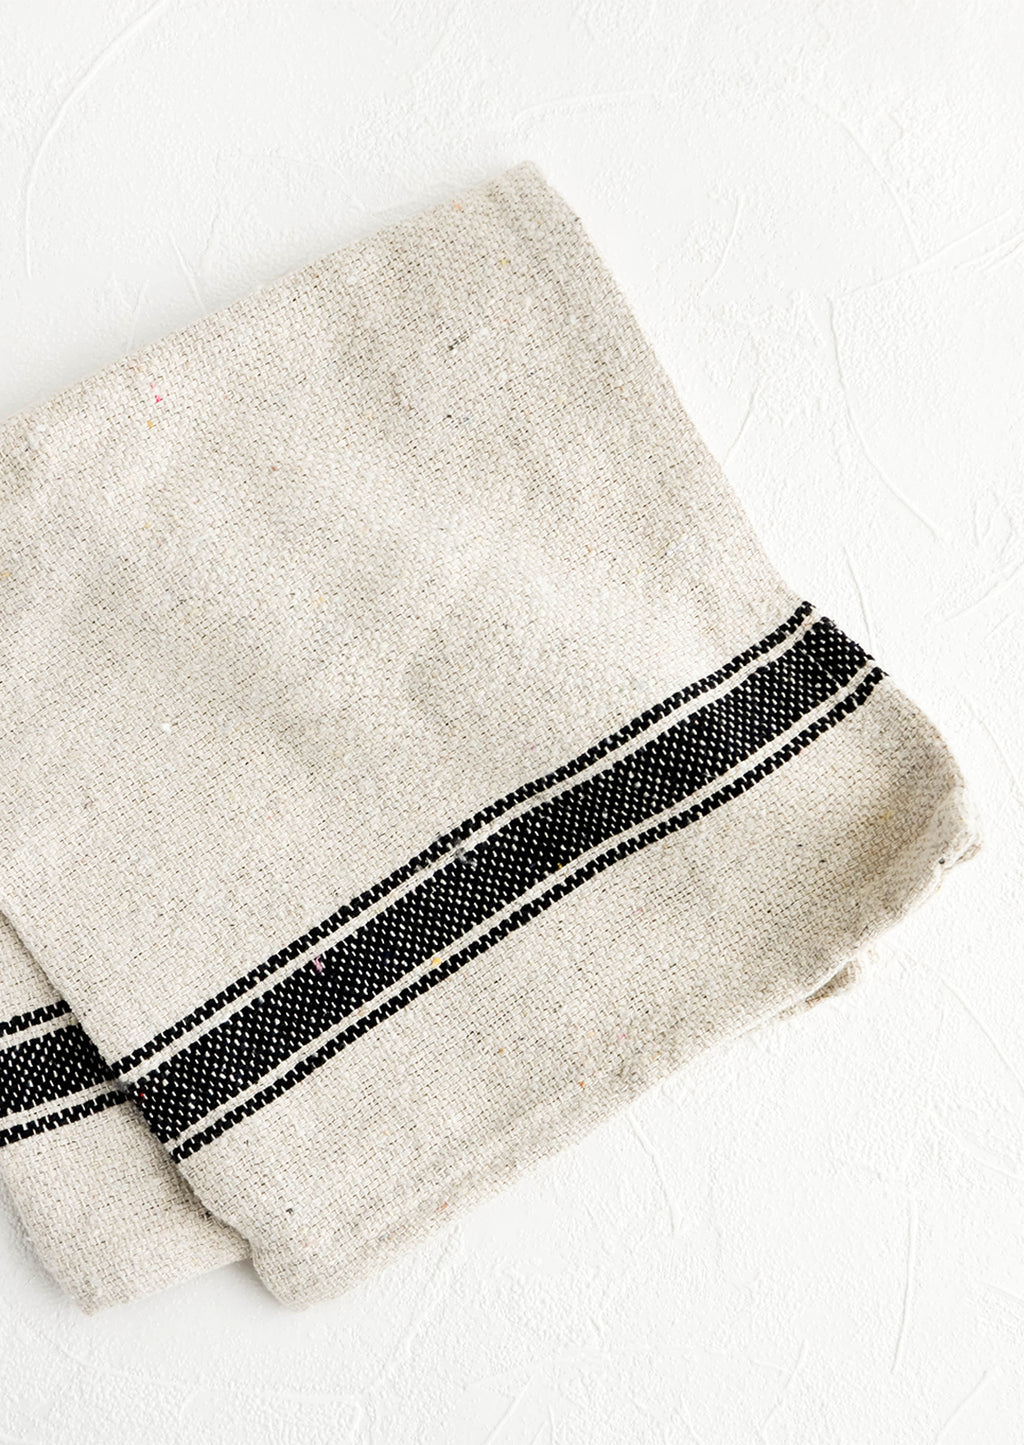 Natural / Black: Thick woven cotton kitchen towel in natural with thick black stripe